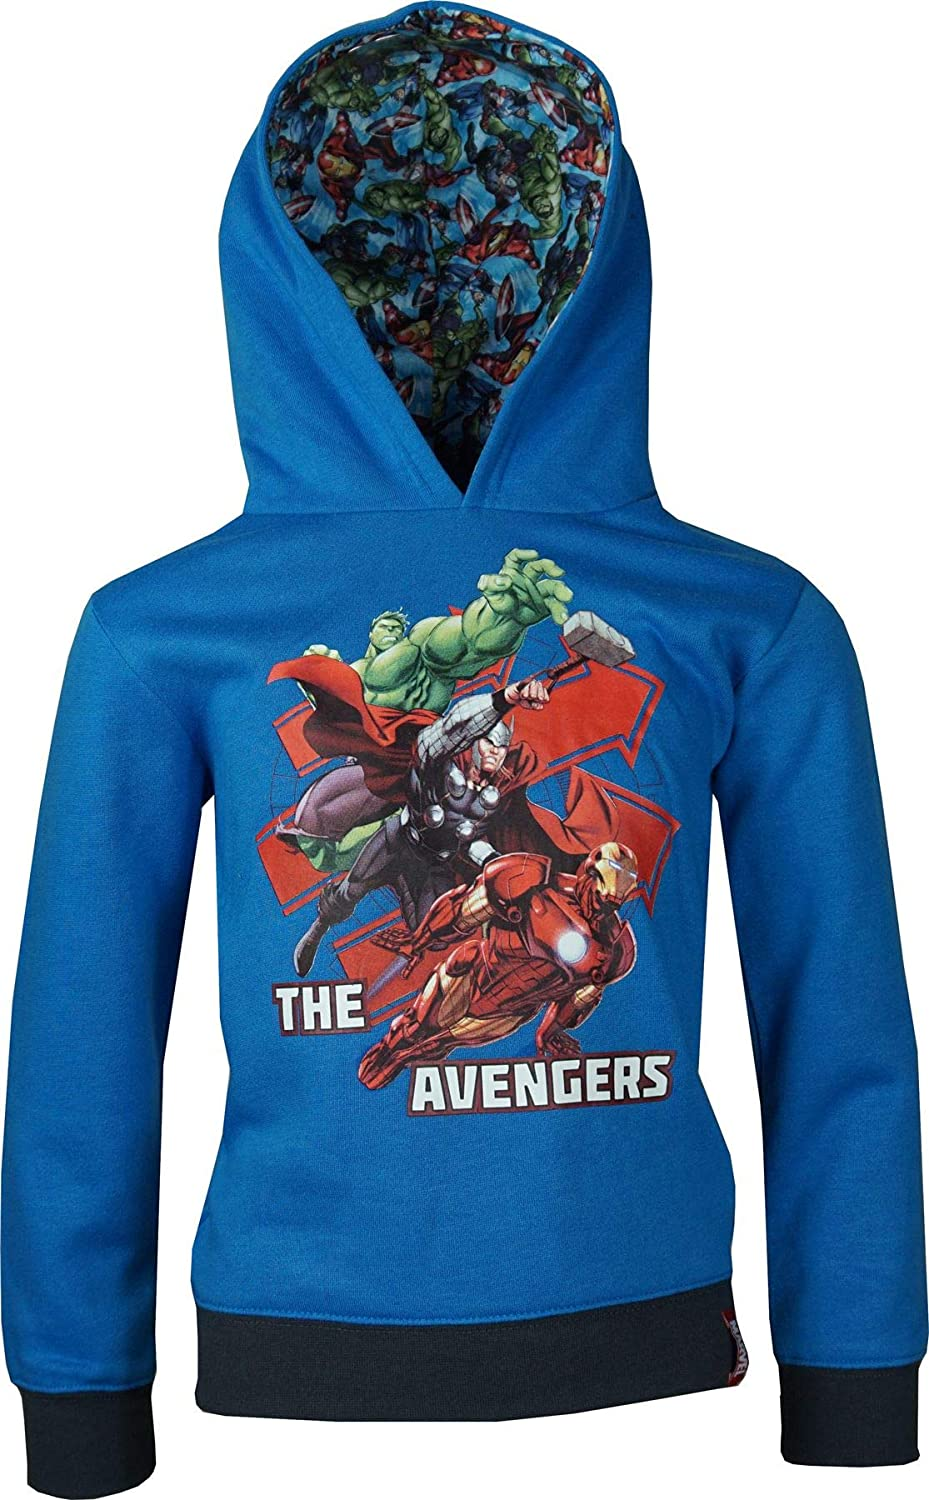 Sweat Garçon officiel Spiderman ou Avengers à capuche du 2 ans au 13 ans